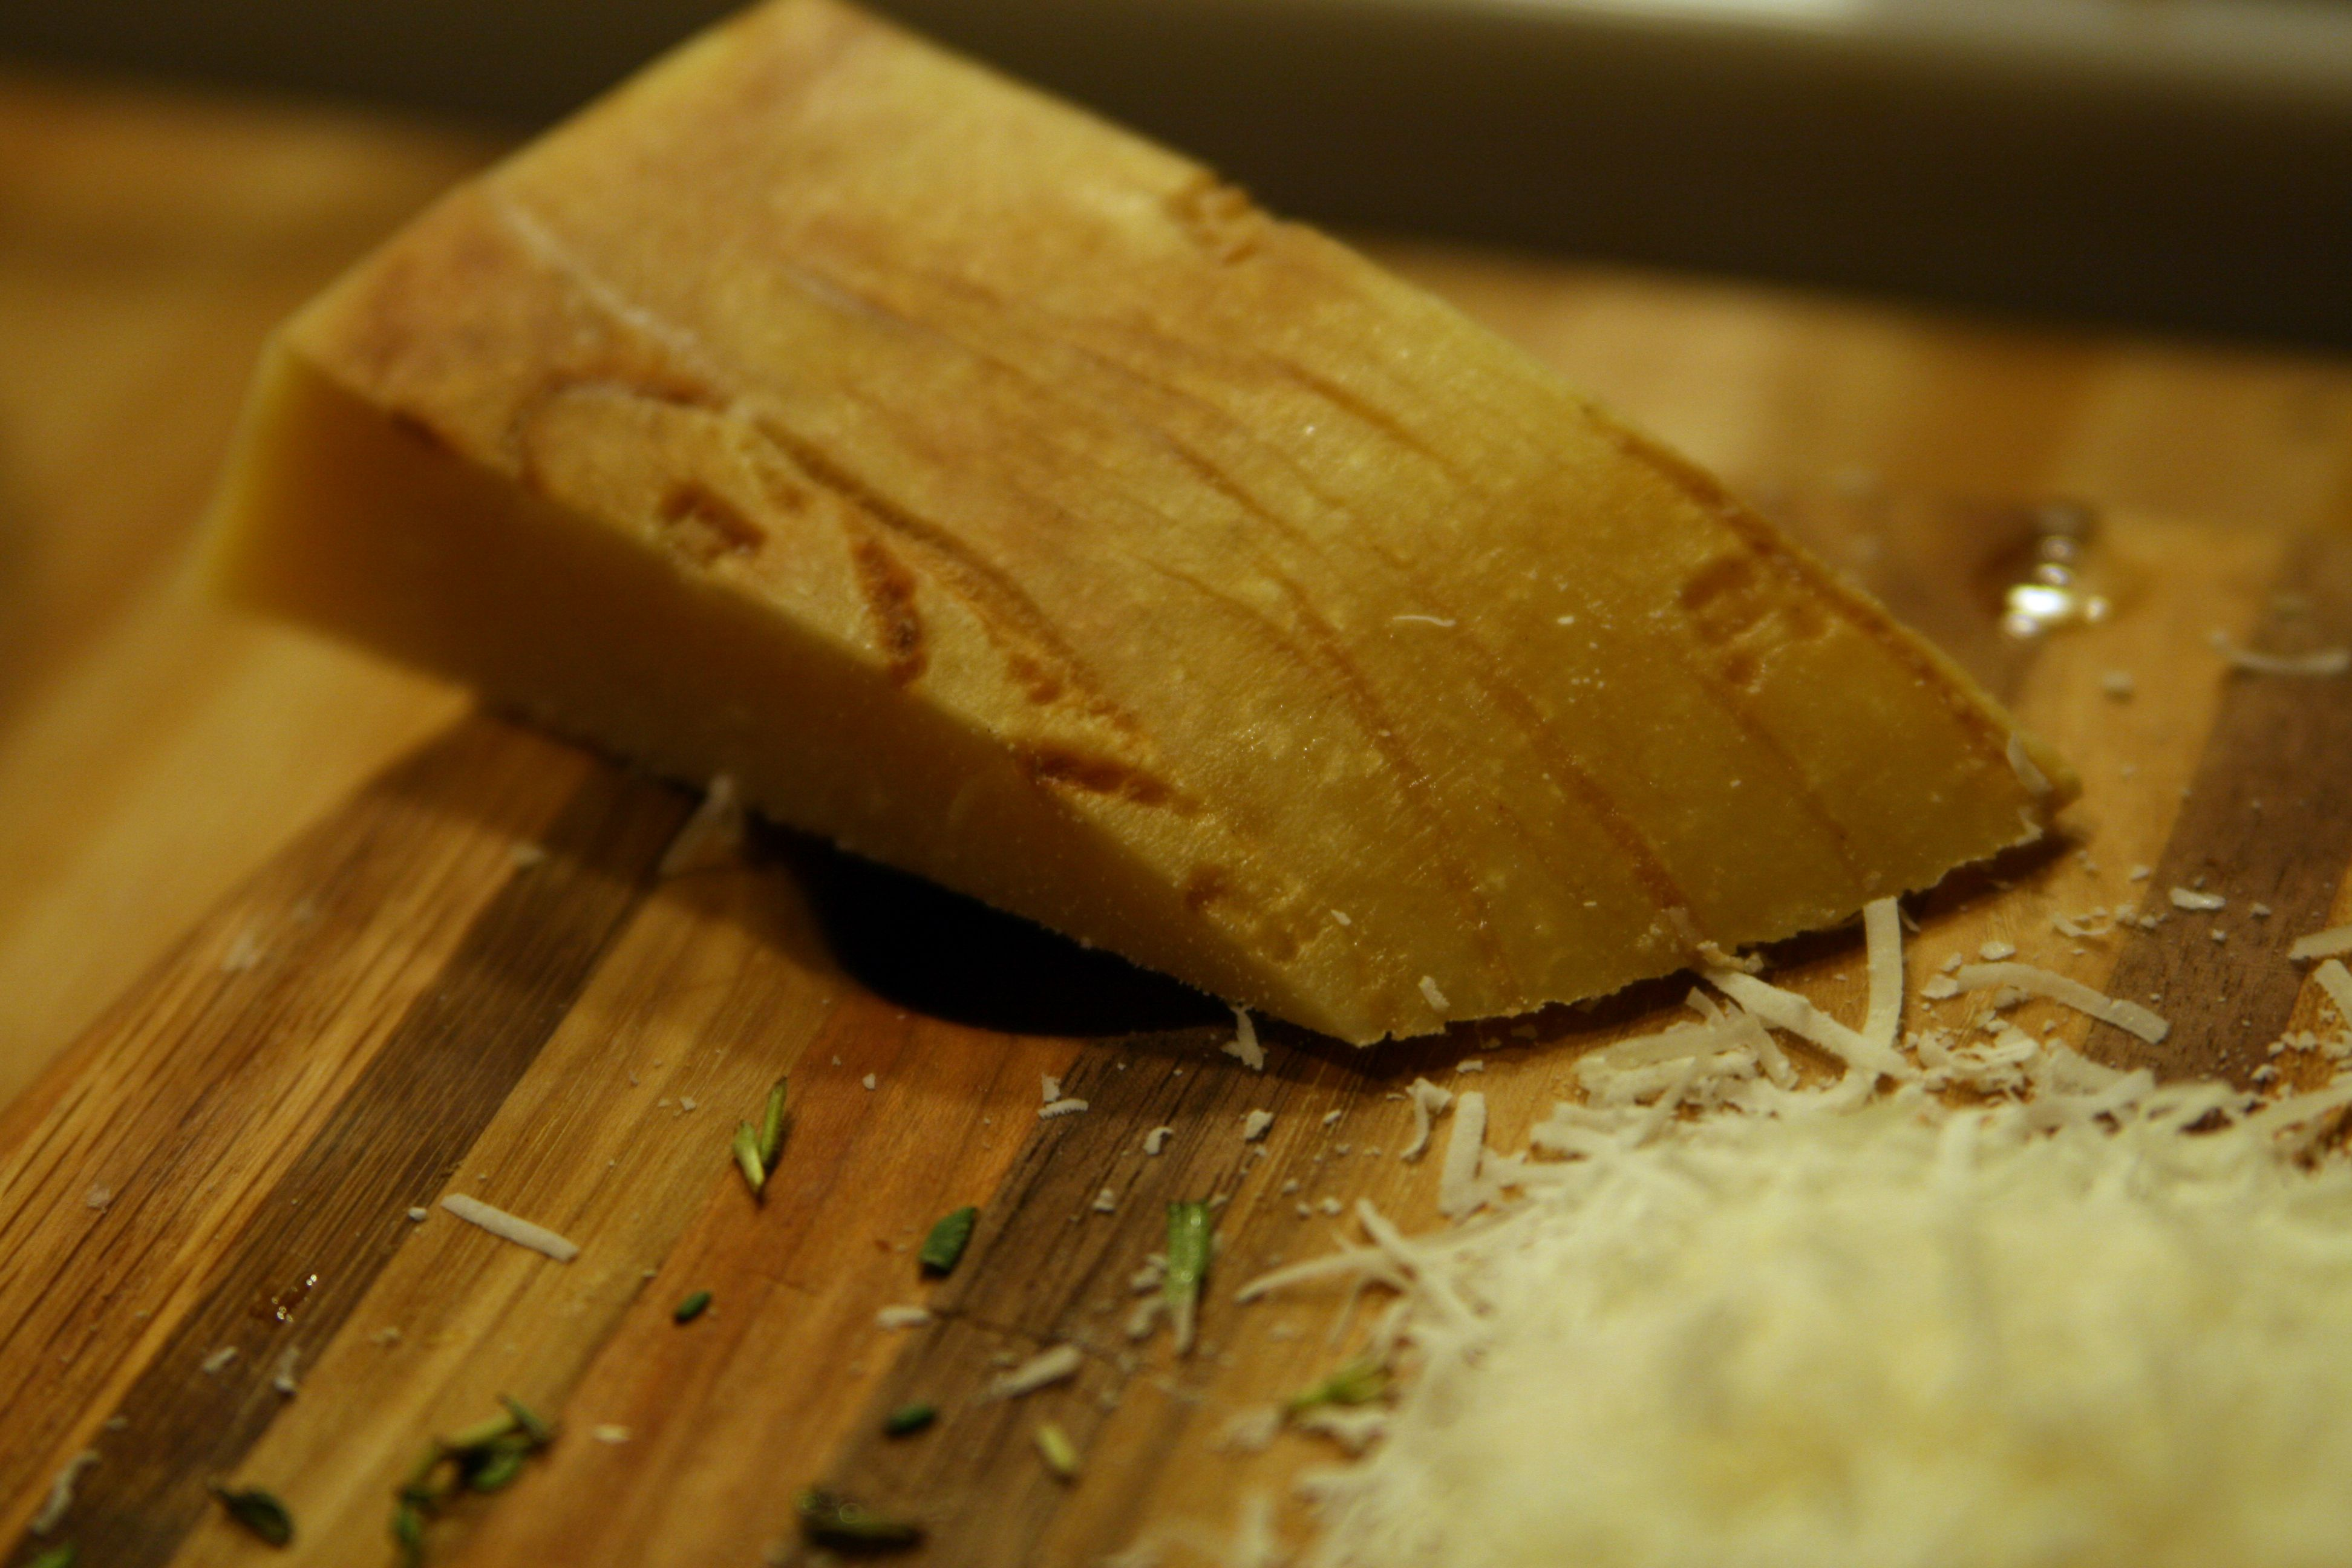 TIP OF THE DAY! ---- While the pasta is still hot after draining it, grate some fresh Parmesan cheese on top before tossing it with your sauce. This way, the sauce has something to stick to. #Pasta #Tip #Parmesan